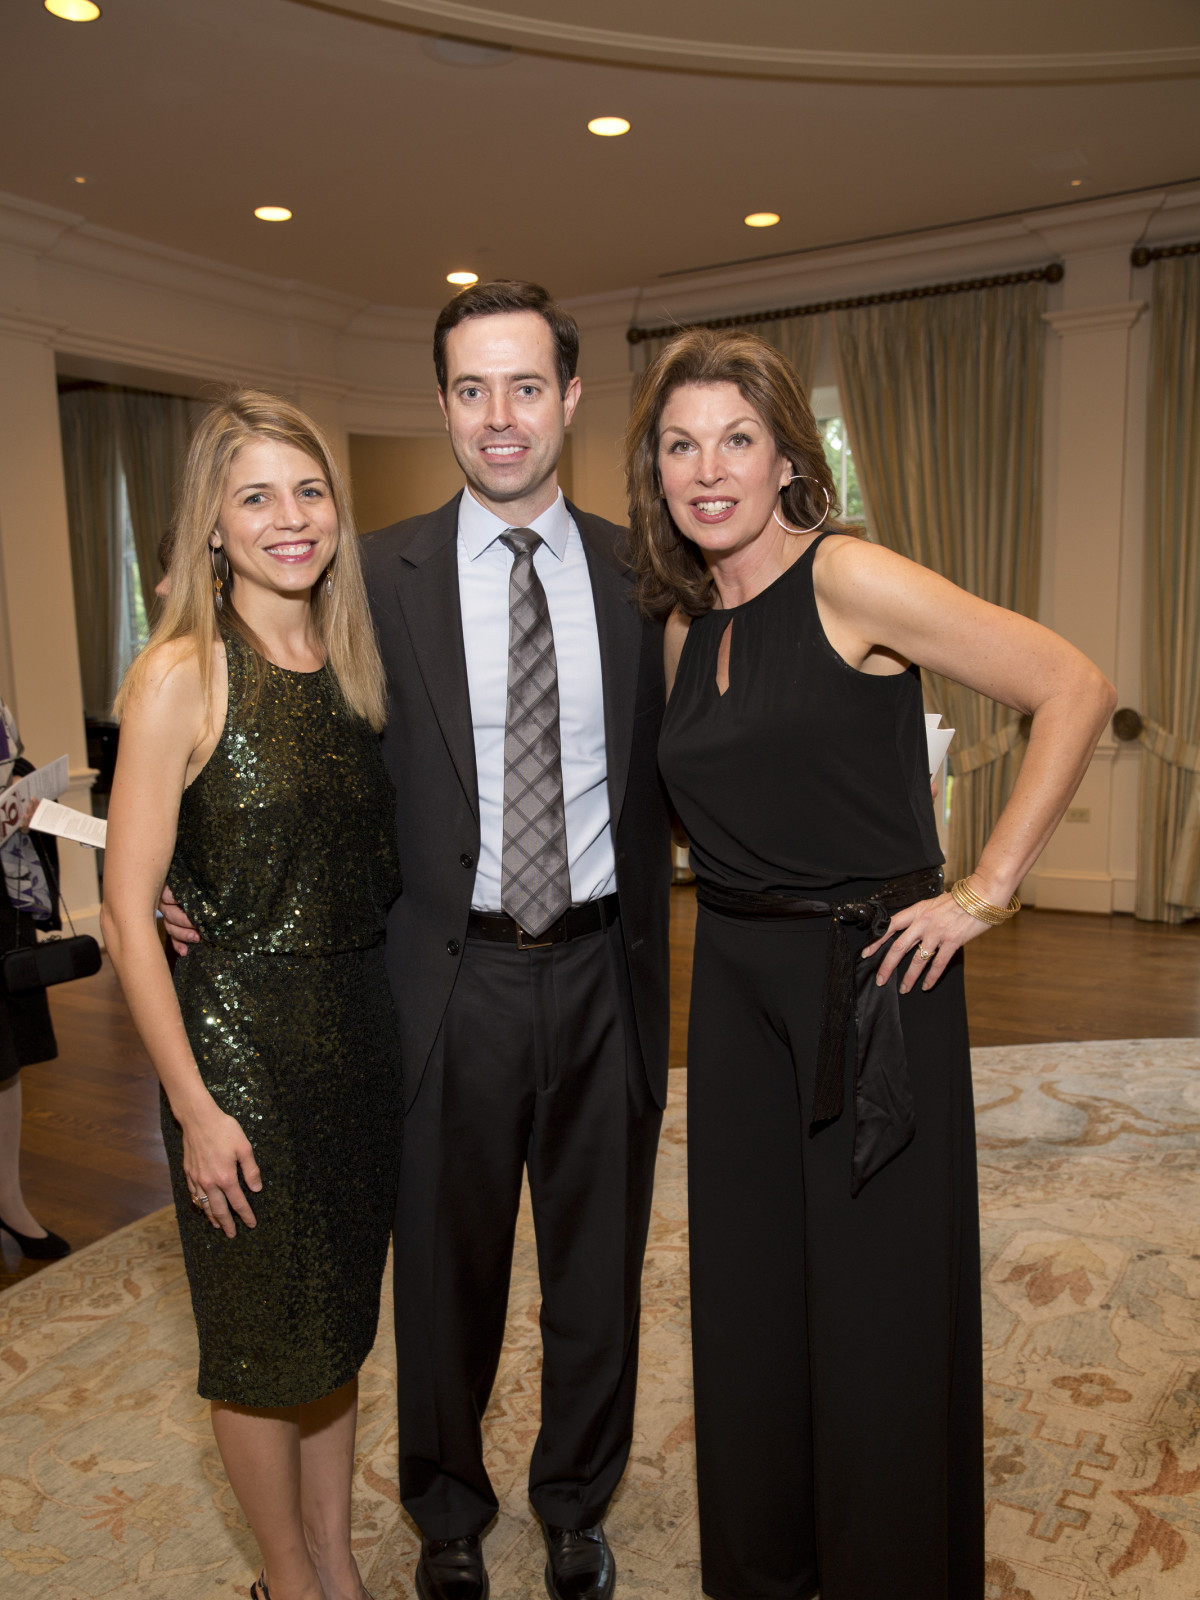 Sheri O'Leary, Brendan O'Leary, Laura Henry at Chinquapin Flashback Gala